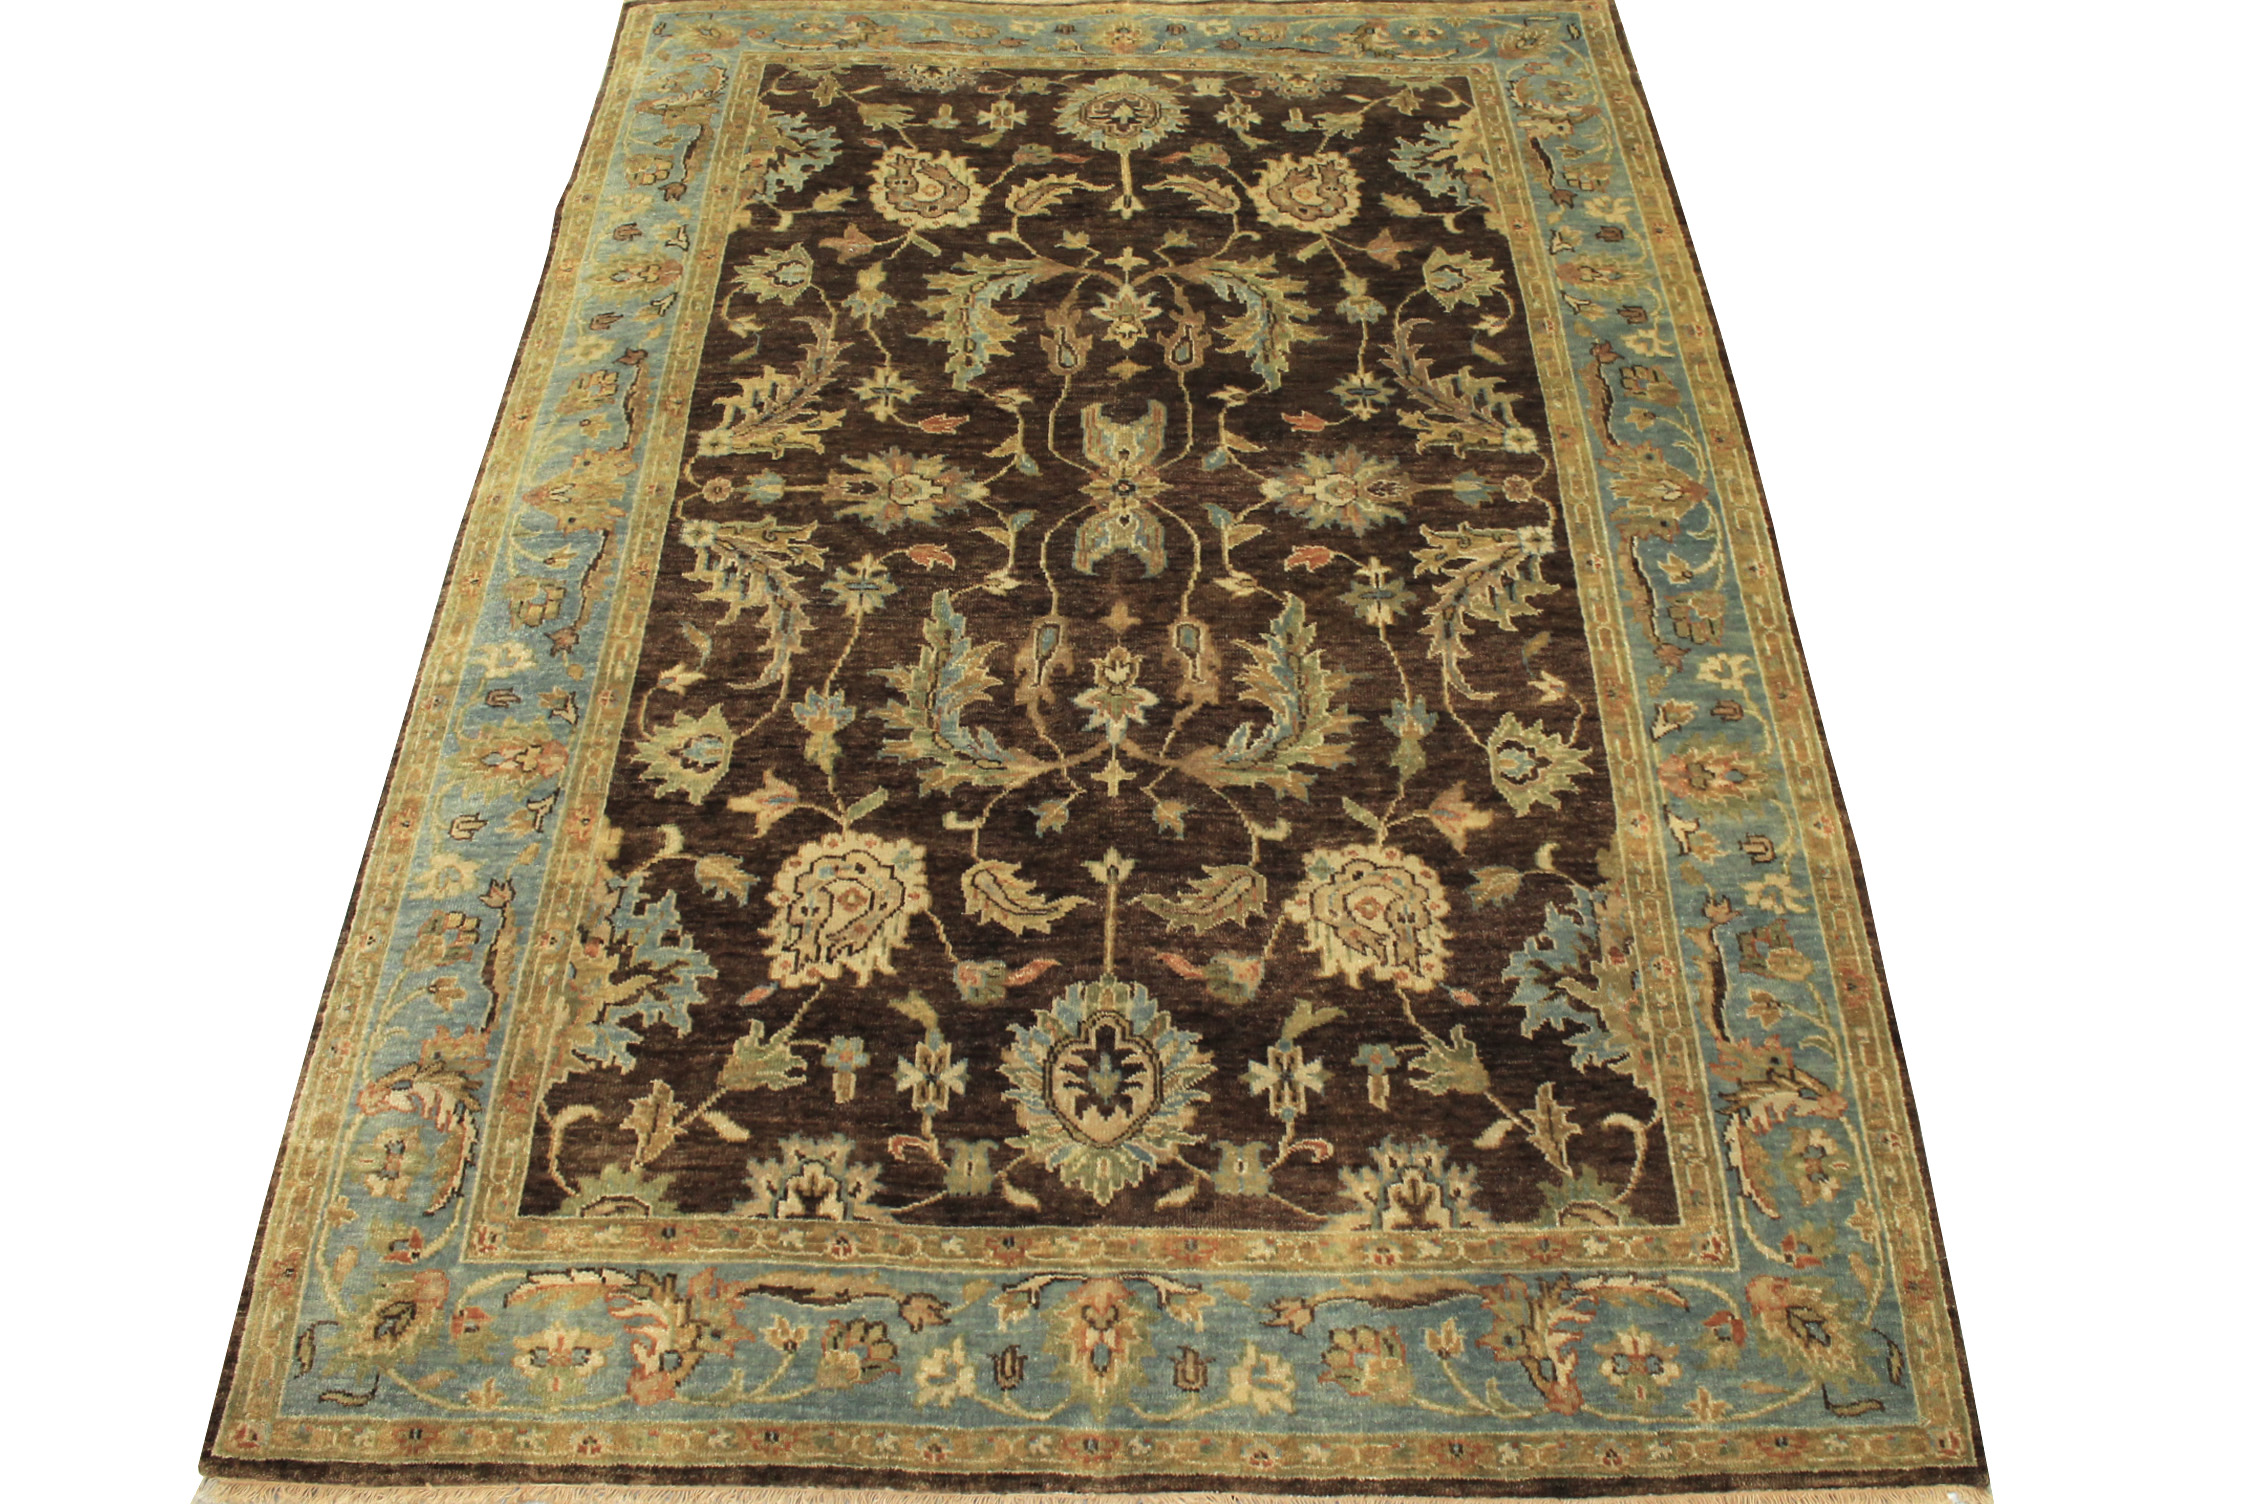 6x9 Oushak Hand Knotted Wool Area Rug - MR12362